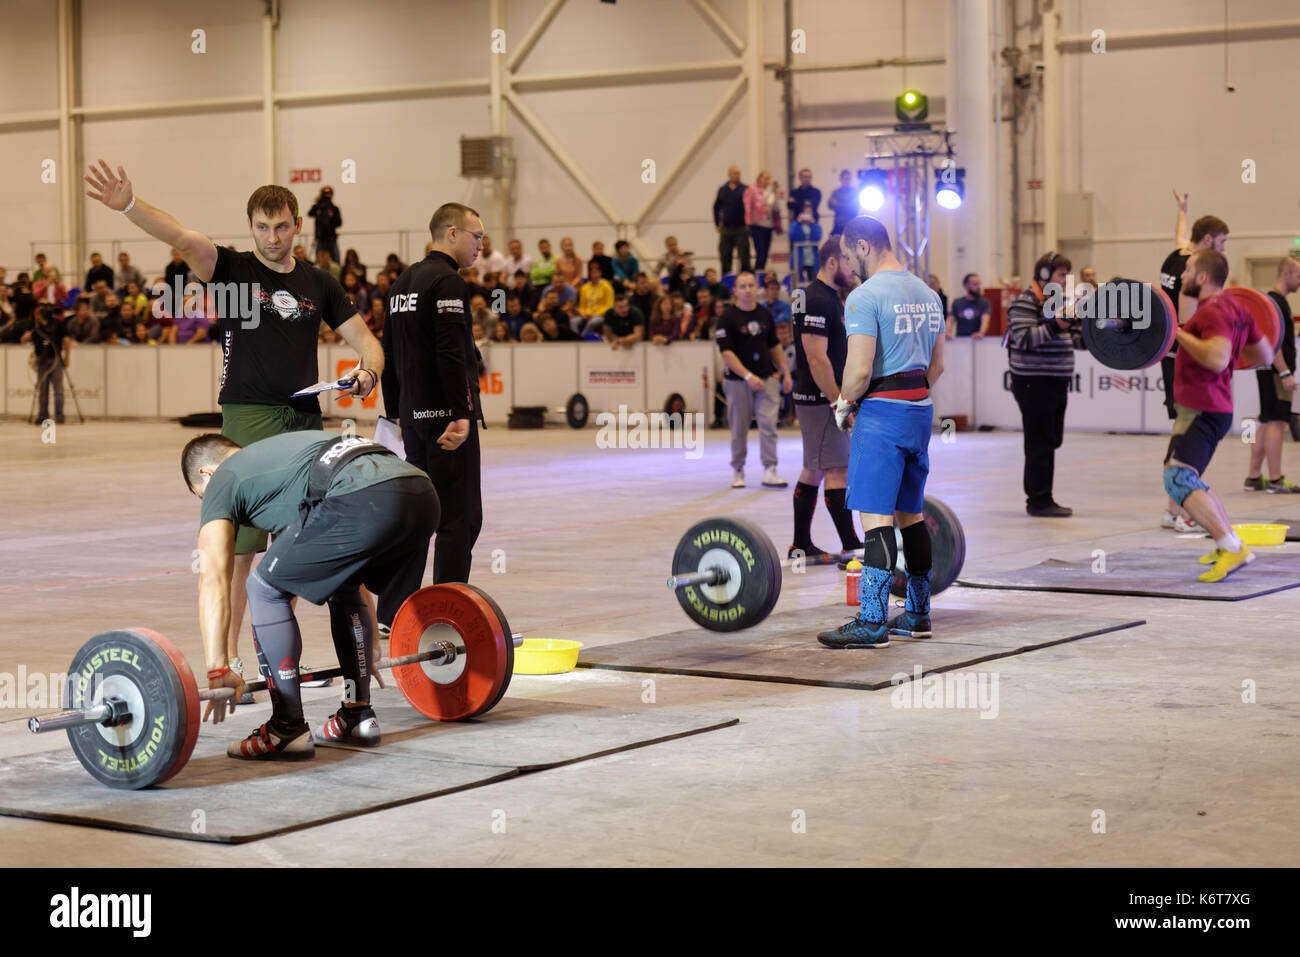 Novosibirsk, Russia - November 16, 2014: Unidentified athletes during the International crossfit competition Siberian Showdown. The competition includ - Stock Image